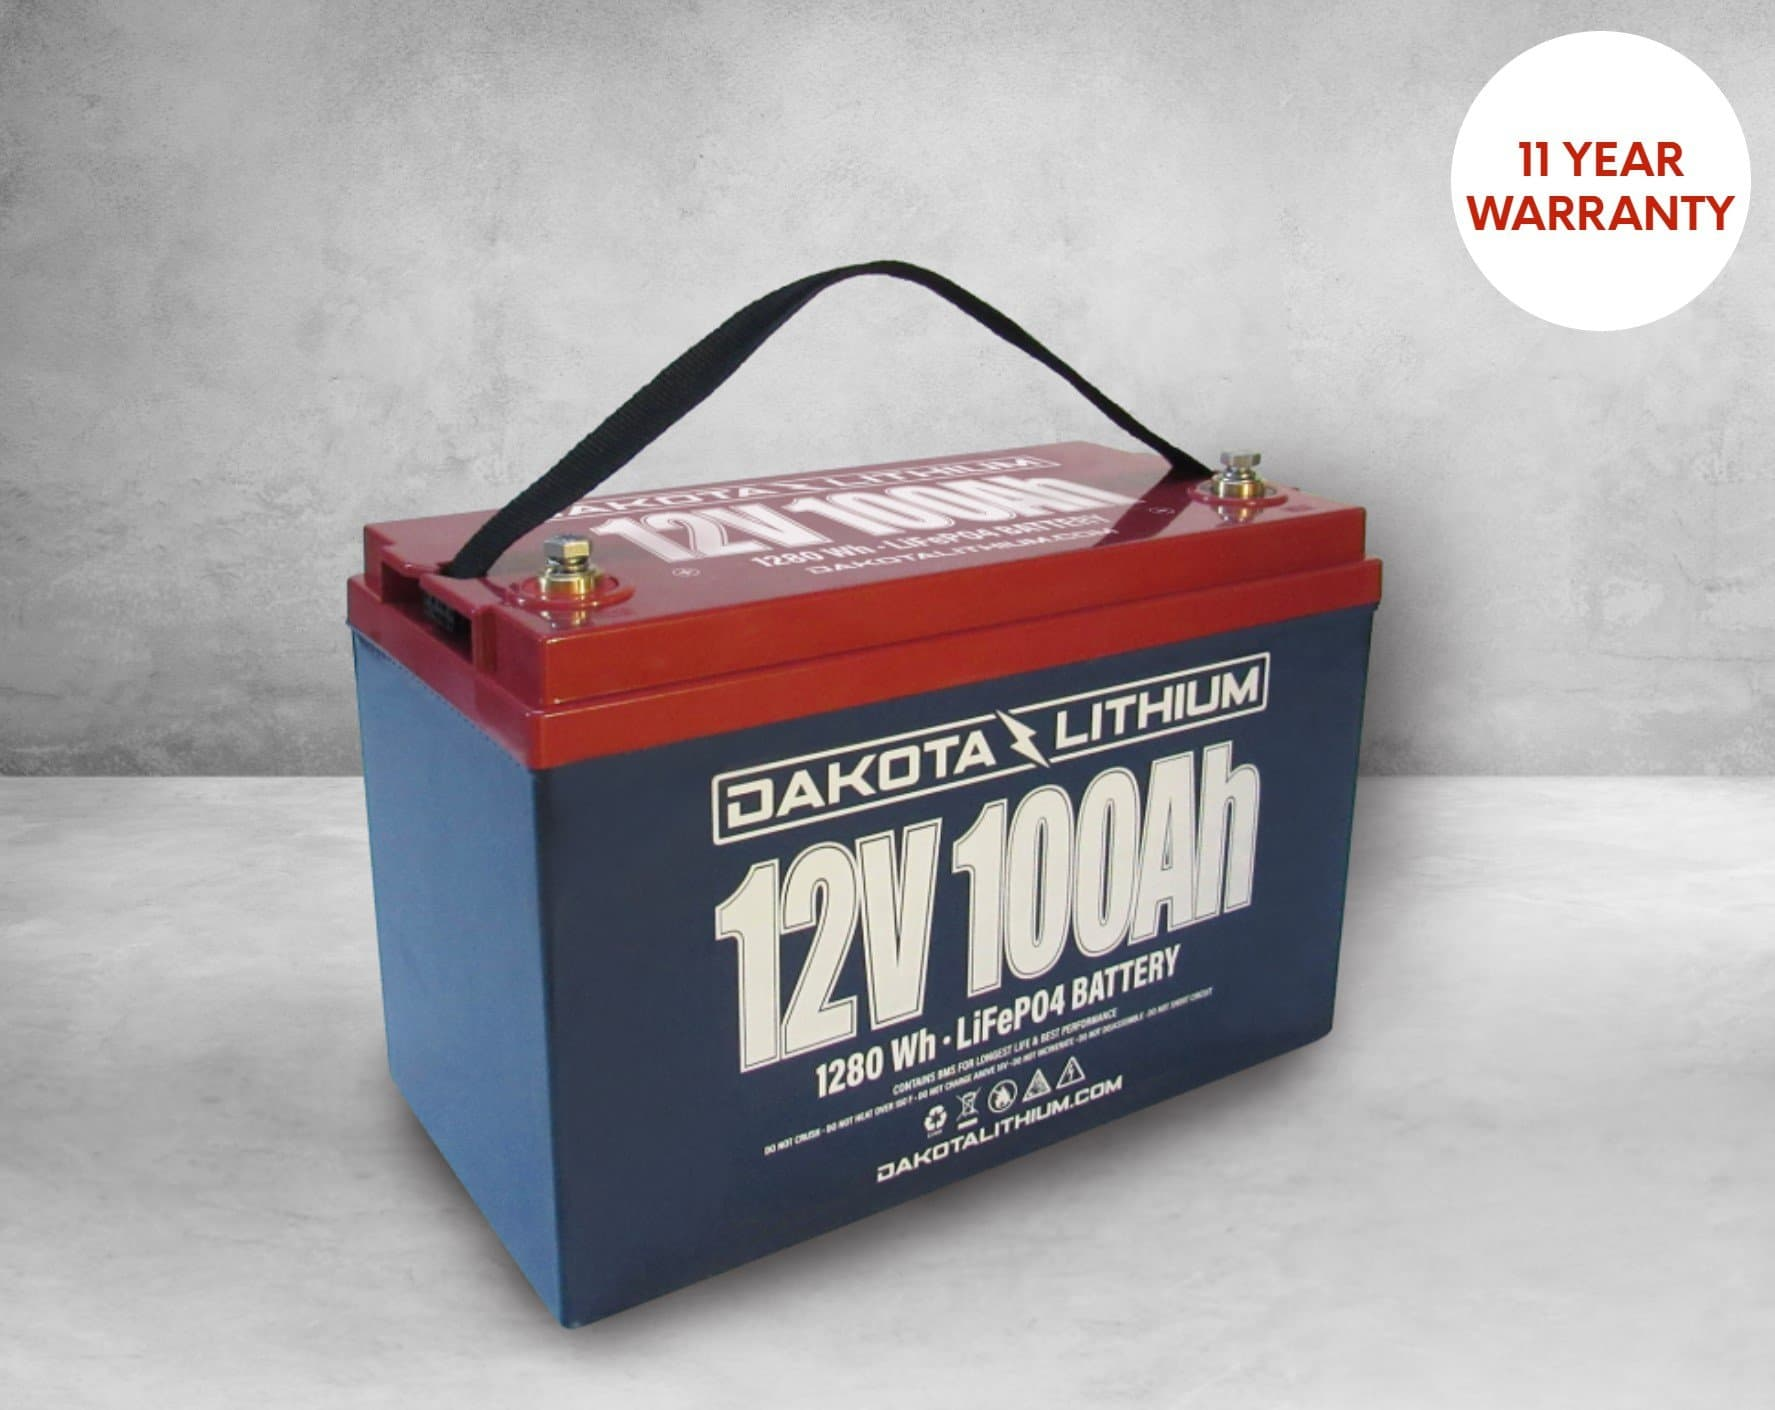 Dakota Lithium - 100Ah LiFePO4 Deep Cycle Battery